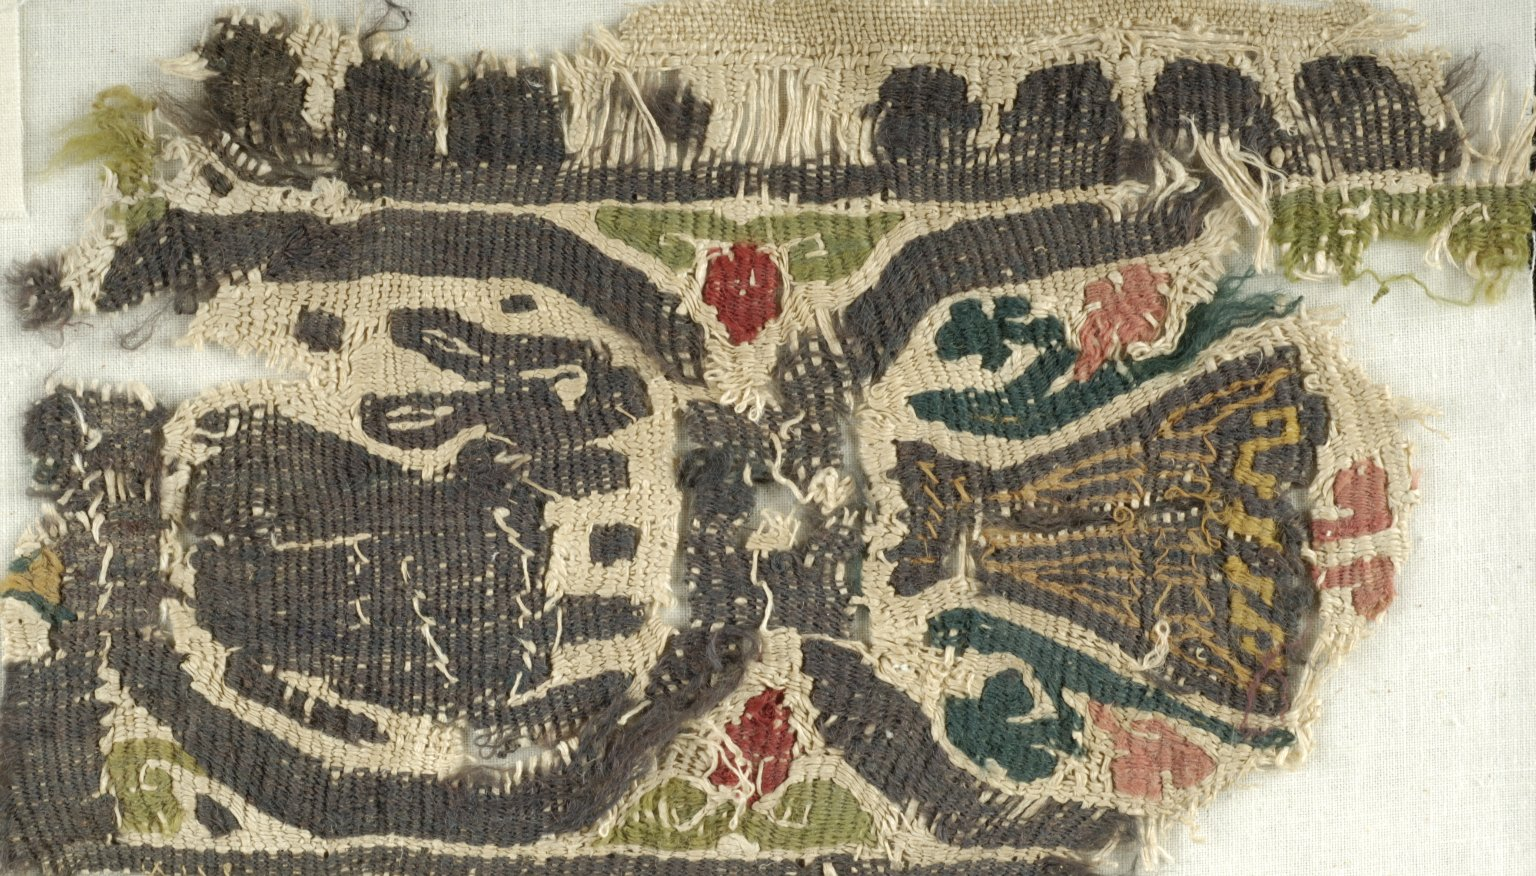 the art of the ancient near In priests and officials in the ancient near east papers of the second colloquium on the ancient near east—the city and its life held at the middle eastern culture center in japan (mitaka, tokyo) , ed k watanabe, pp 103–137.